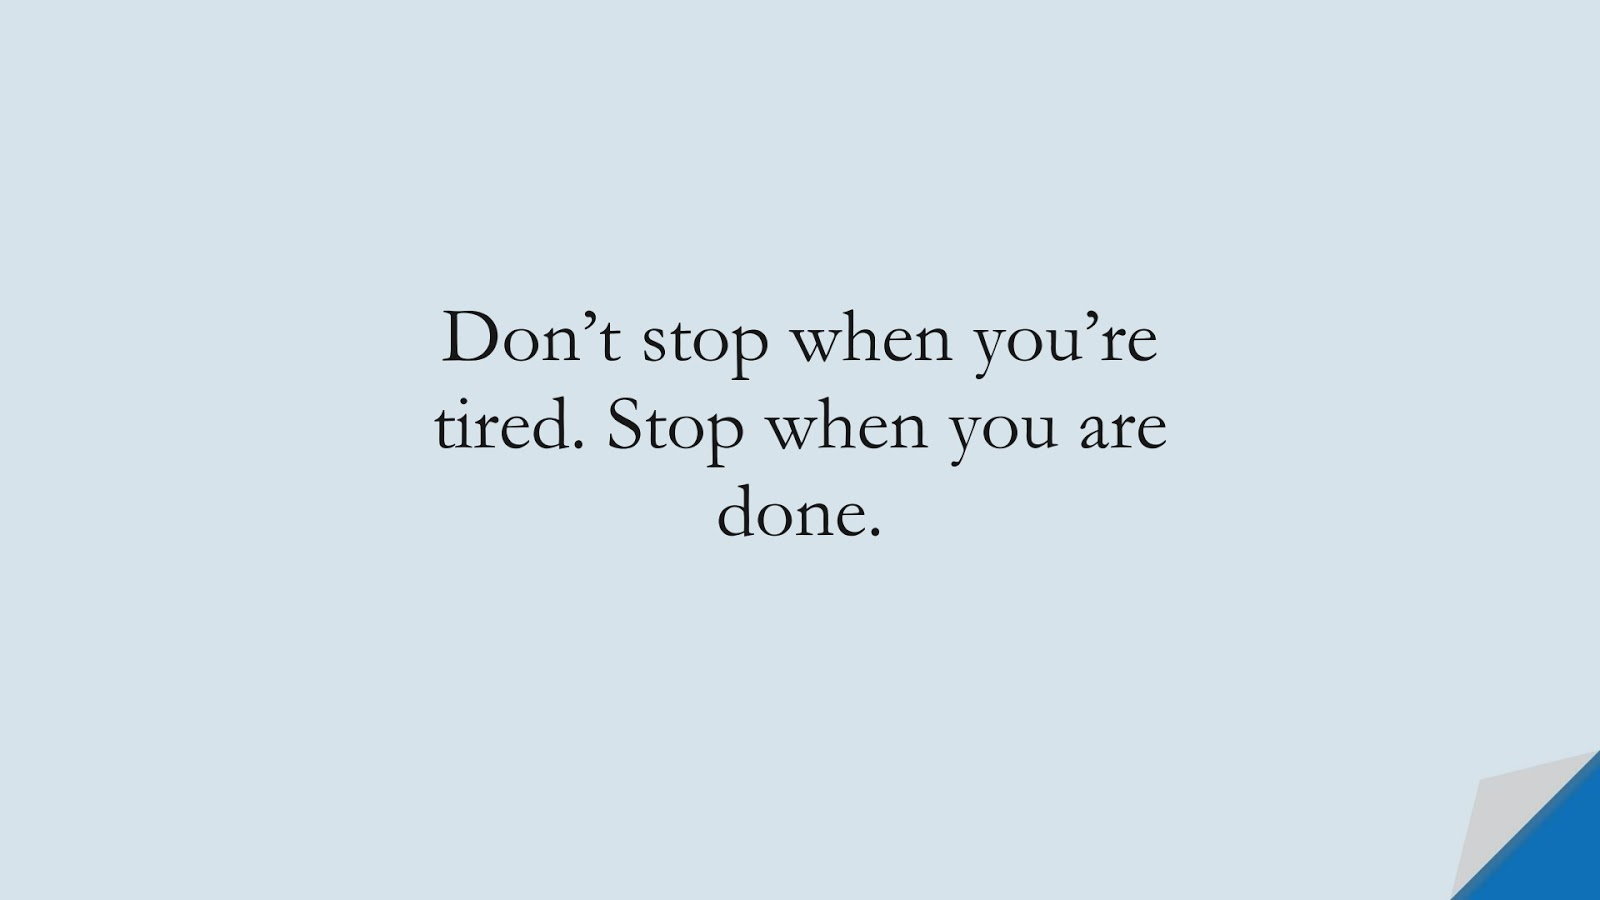 Don't stop when you're tired. Stop when you are done.FALSE